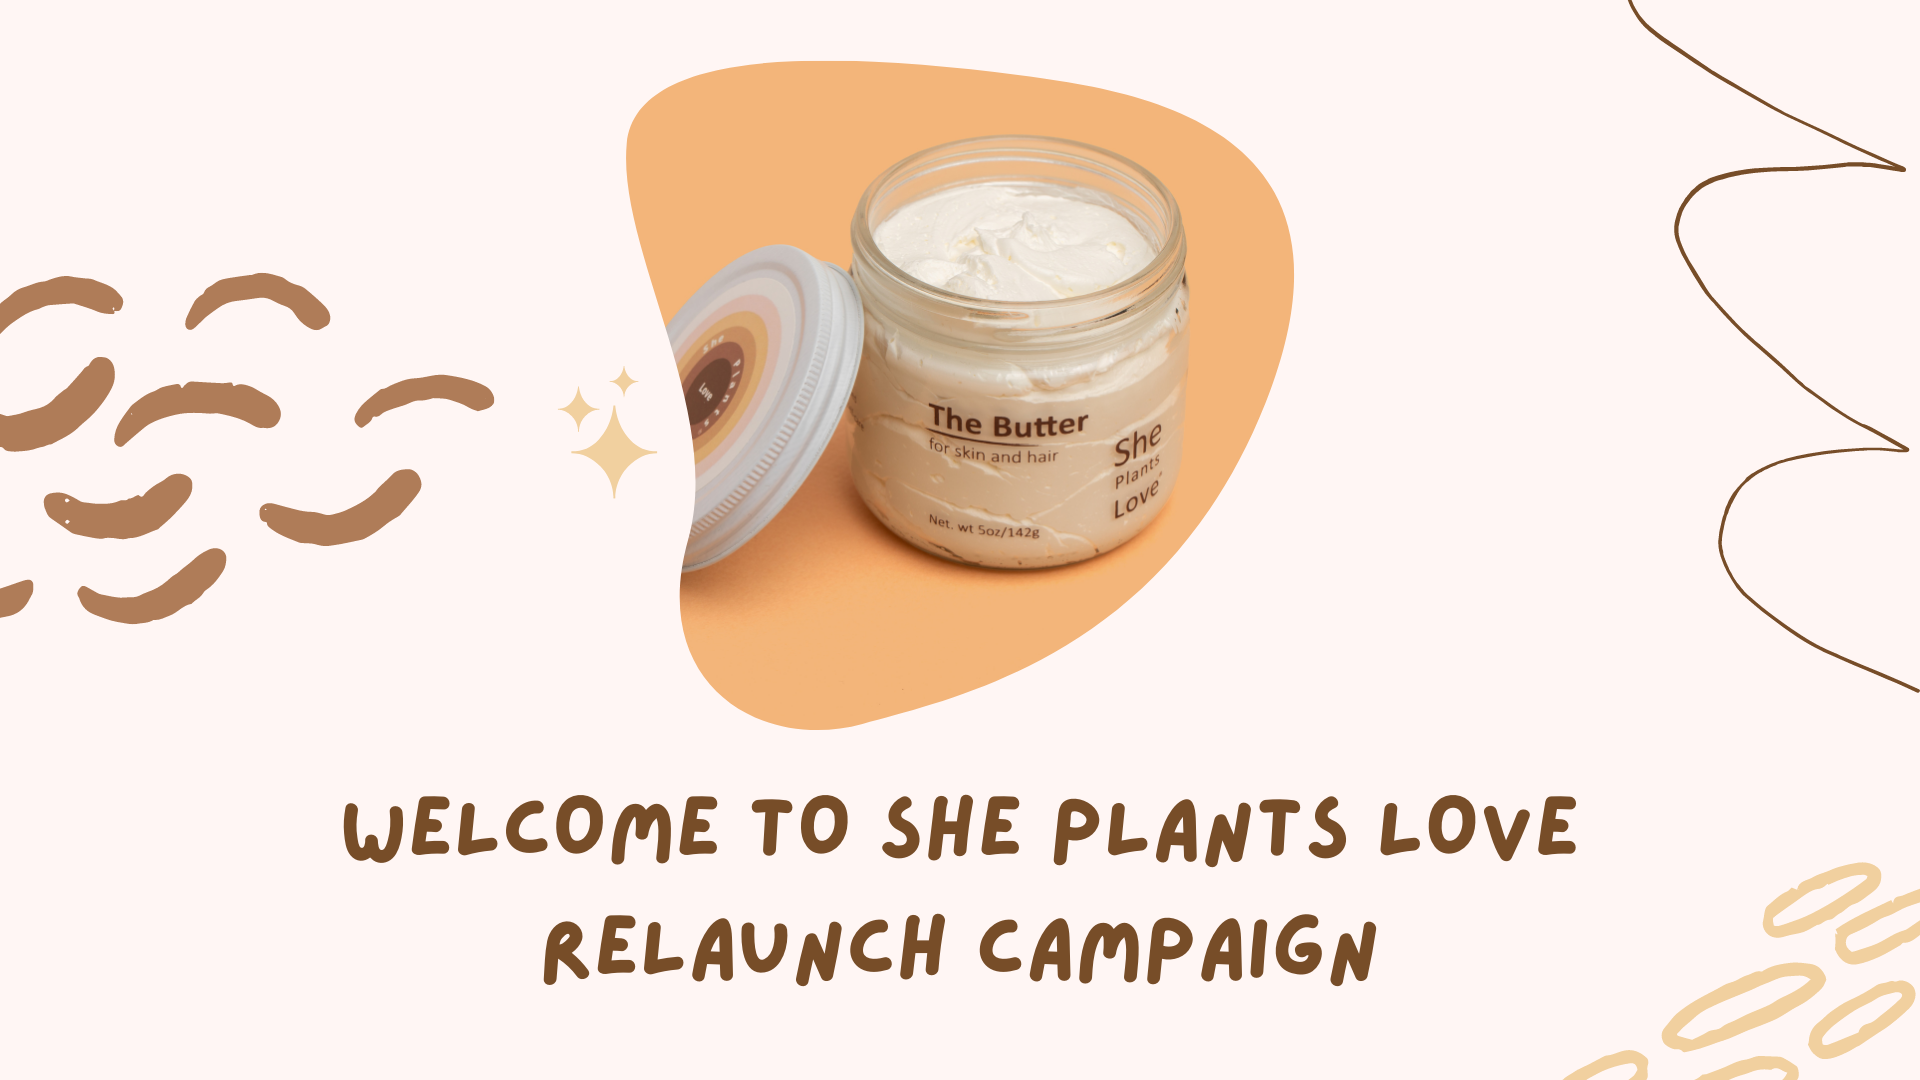 She Plants Love brand images